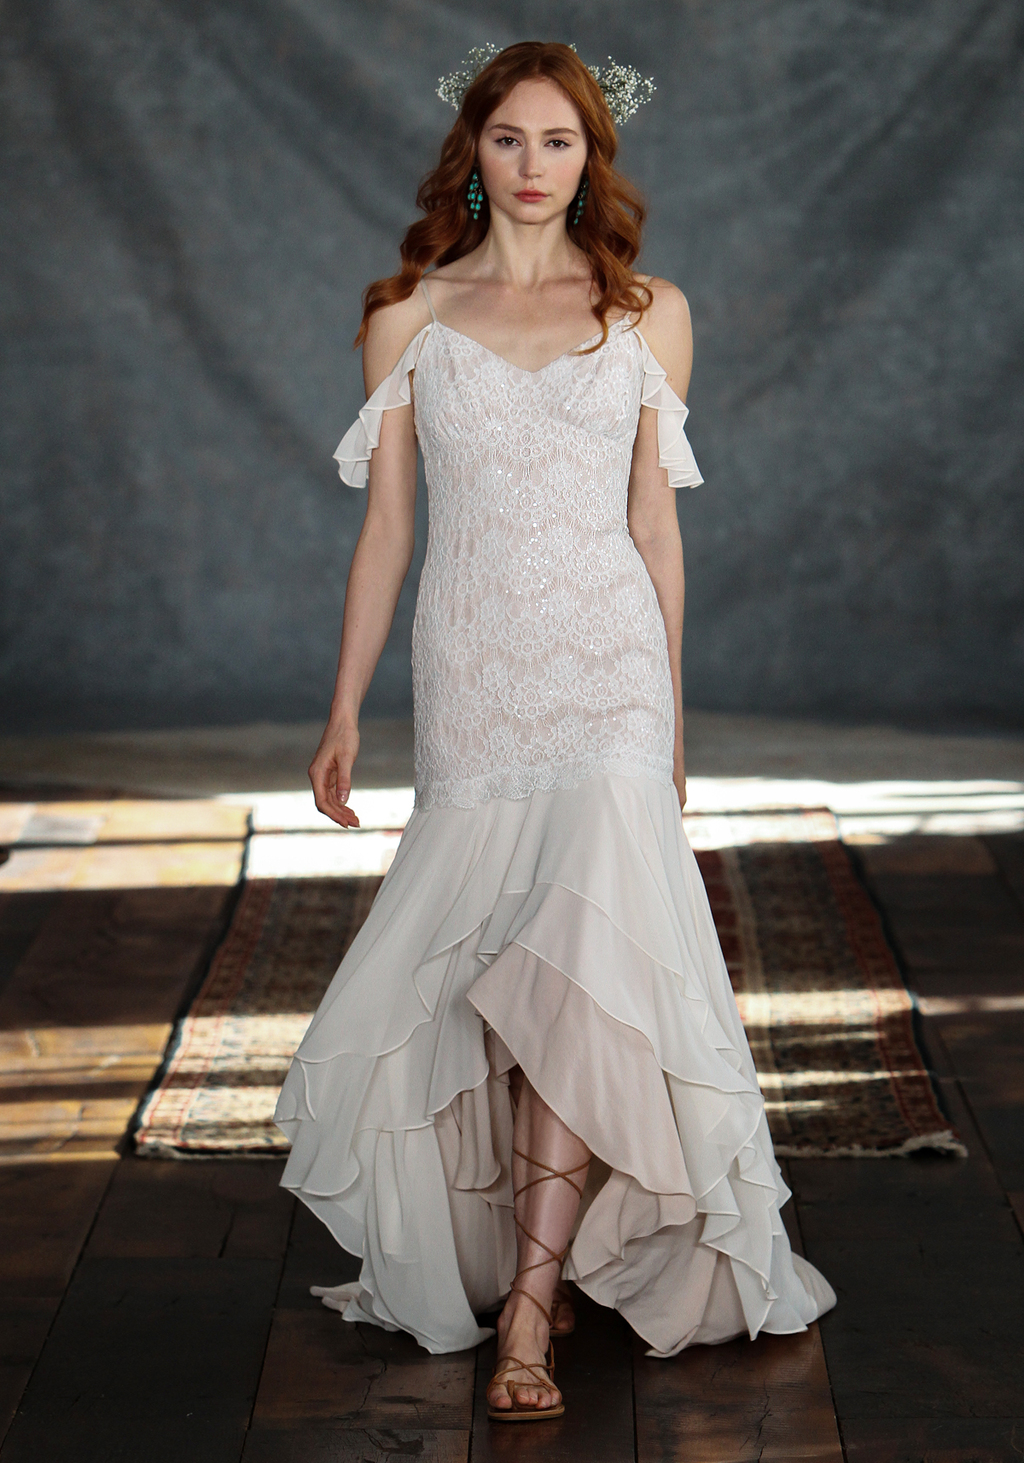 Rhapsody_wedding_dress_from_claire_pettibones_romantique_collection.full